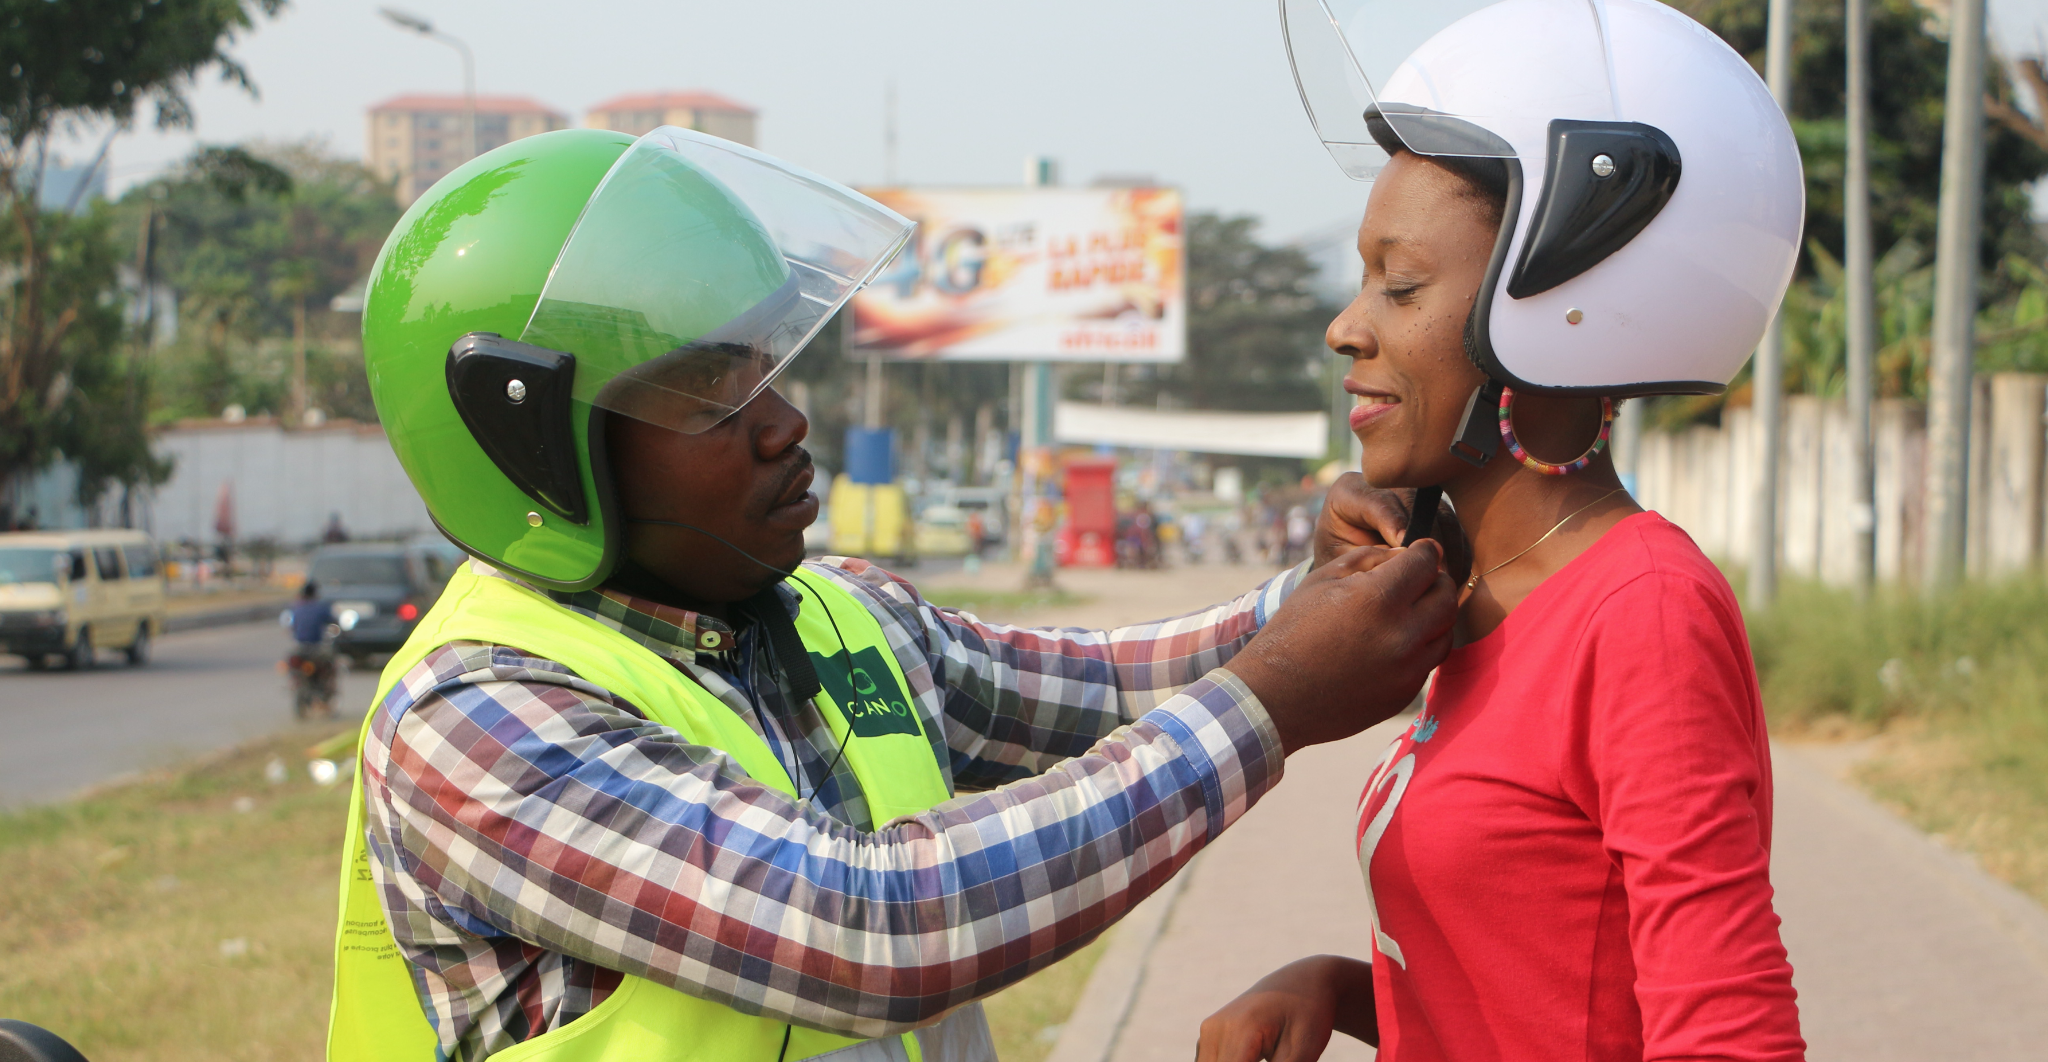 A CanGo Driver helps a passenger put her helmet on